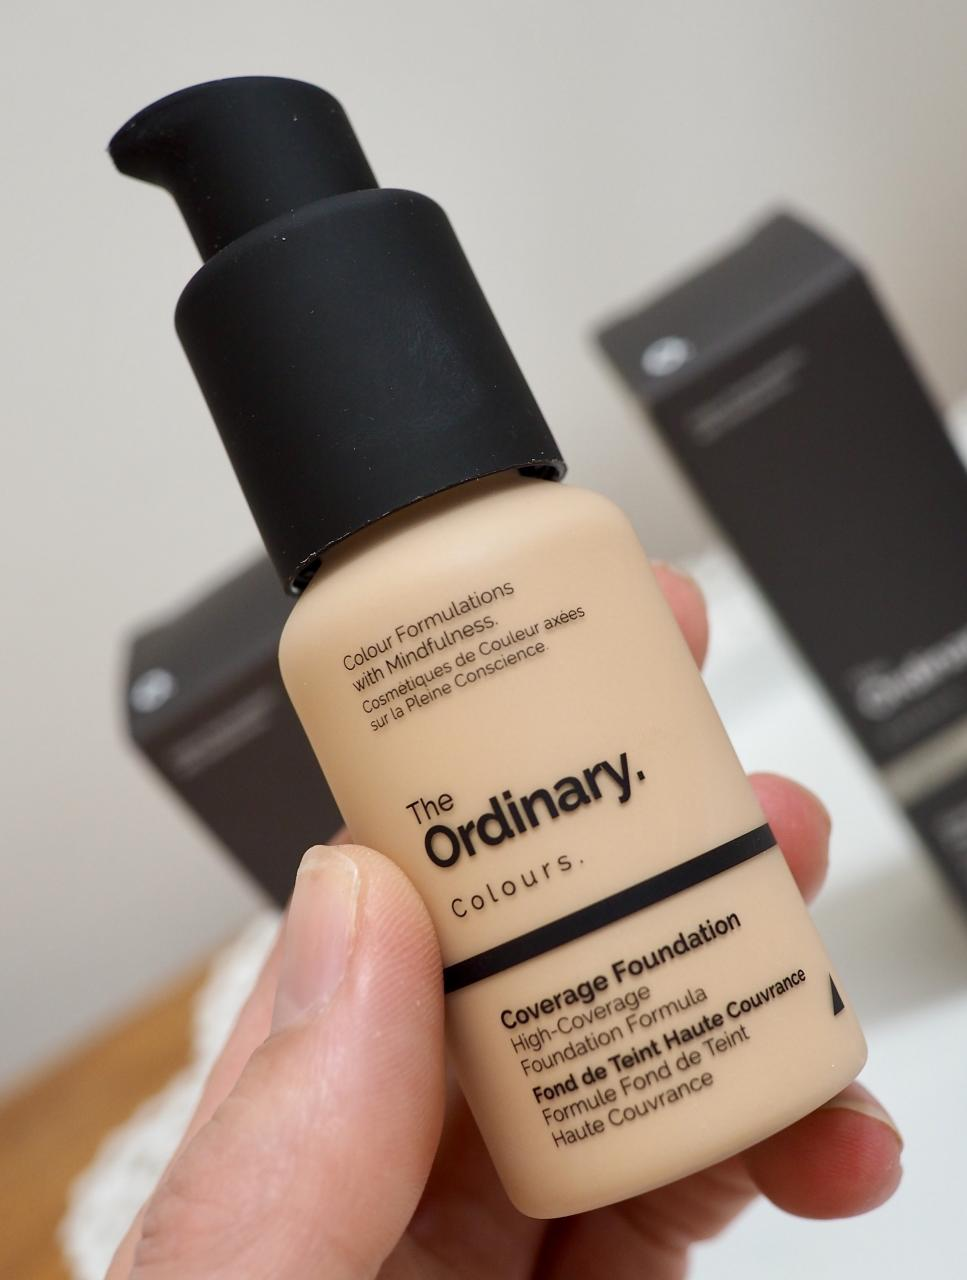 The Ordinary Colours Coverage Foundation Review close up of pump bottle